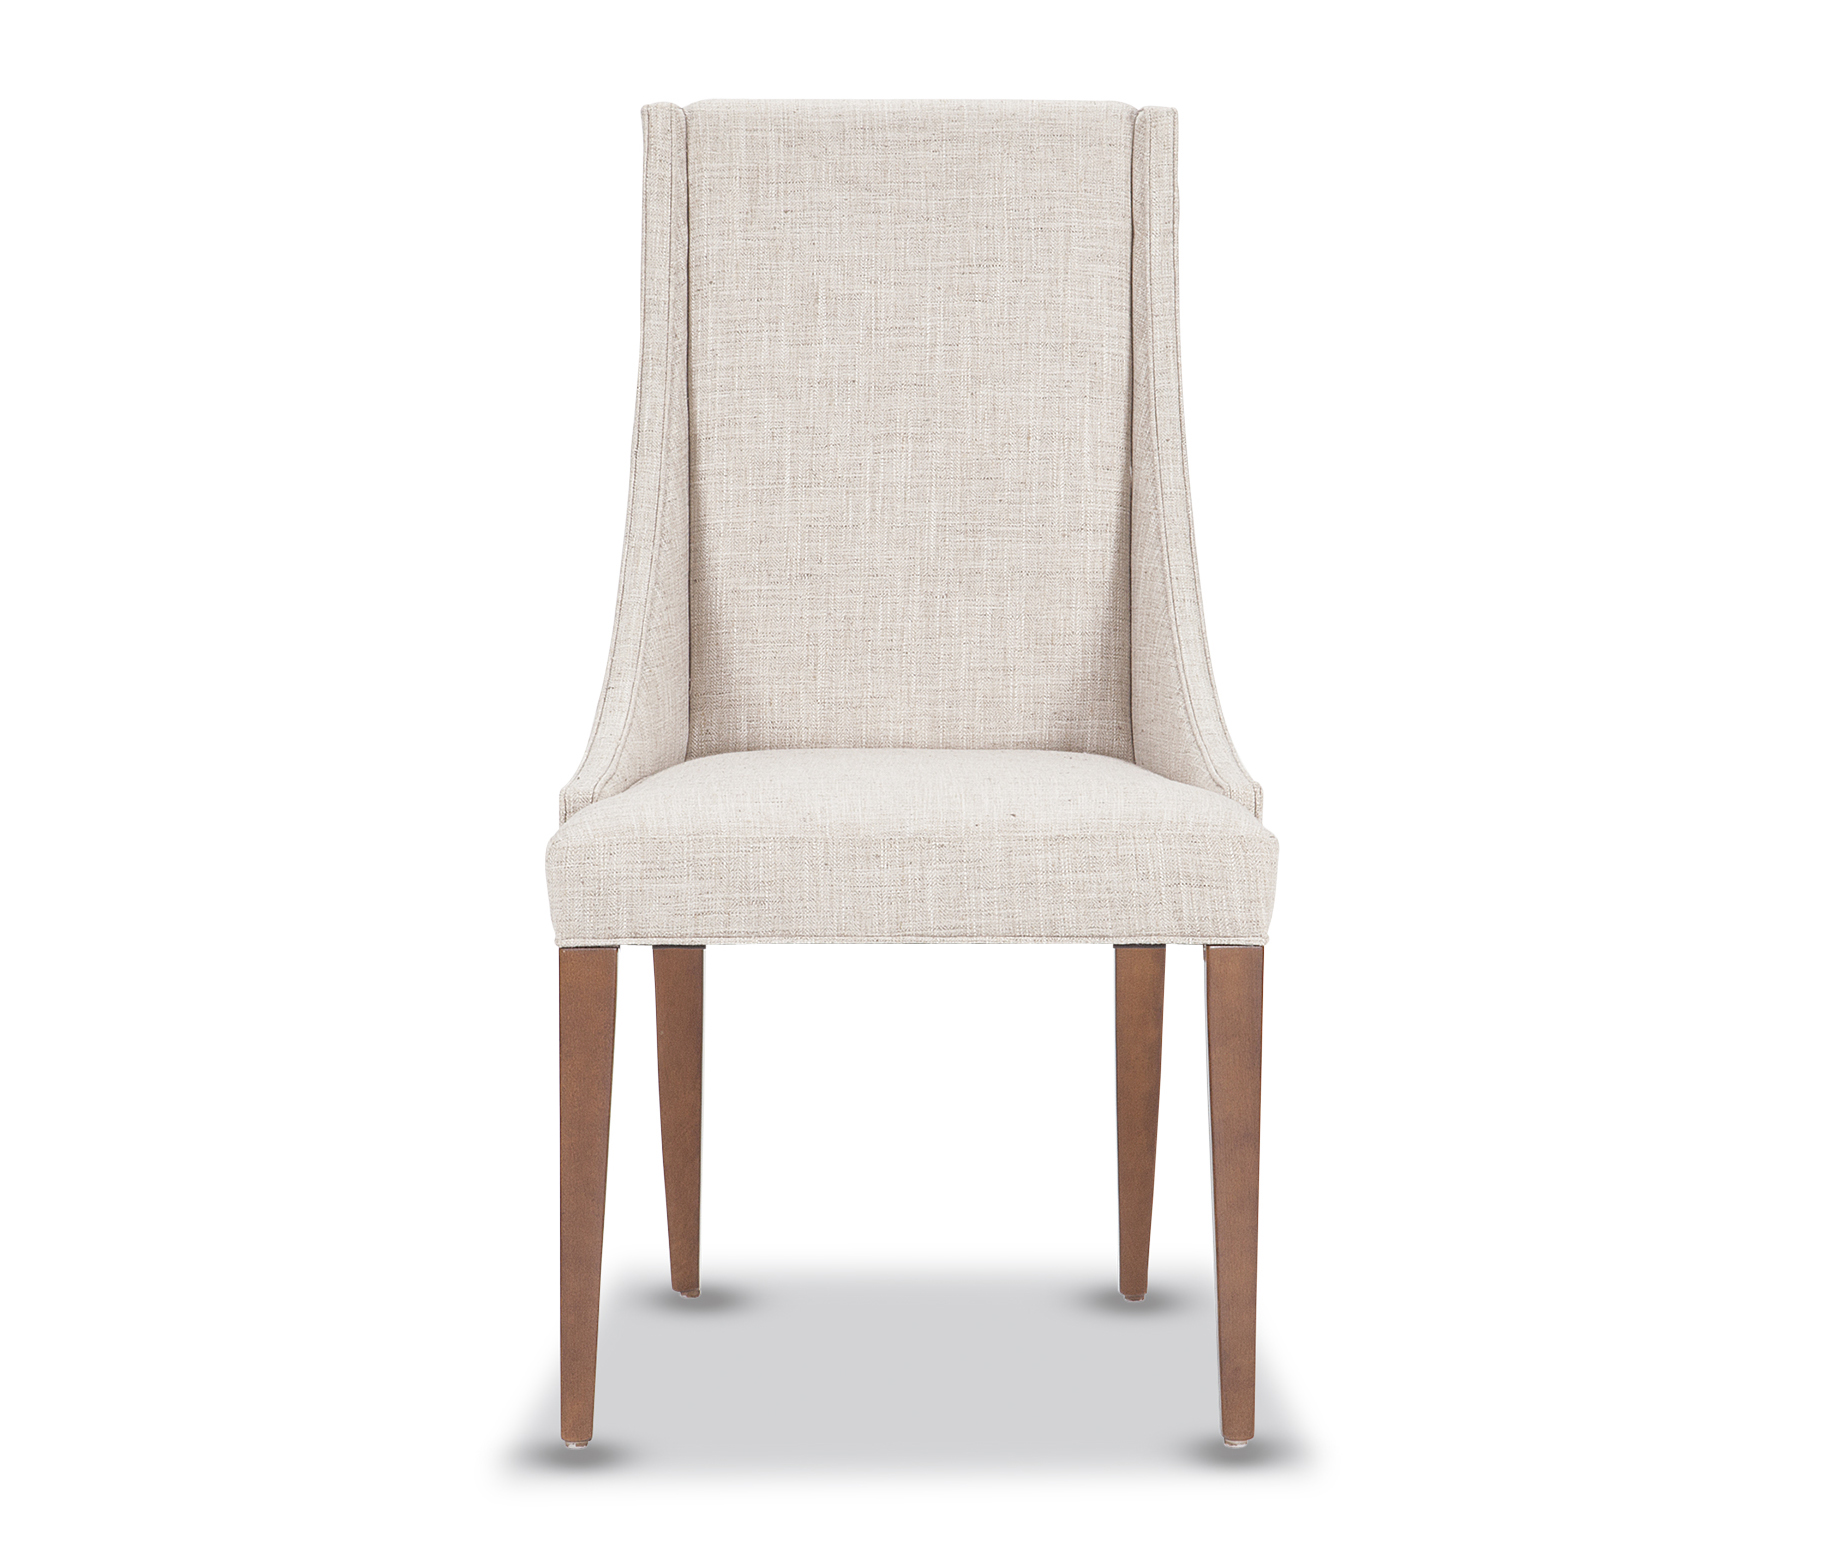 Pleasing Eva Dining Side Chair Dining Room Dining Chairs Creativecarmelina Interior Chair Design Creativecarmelinacom